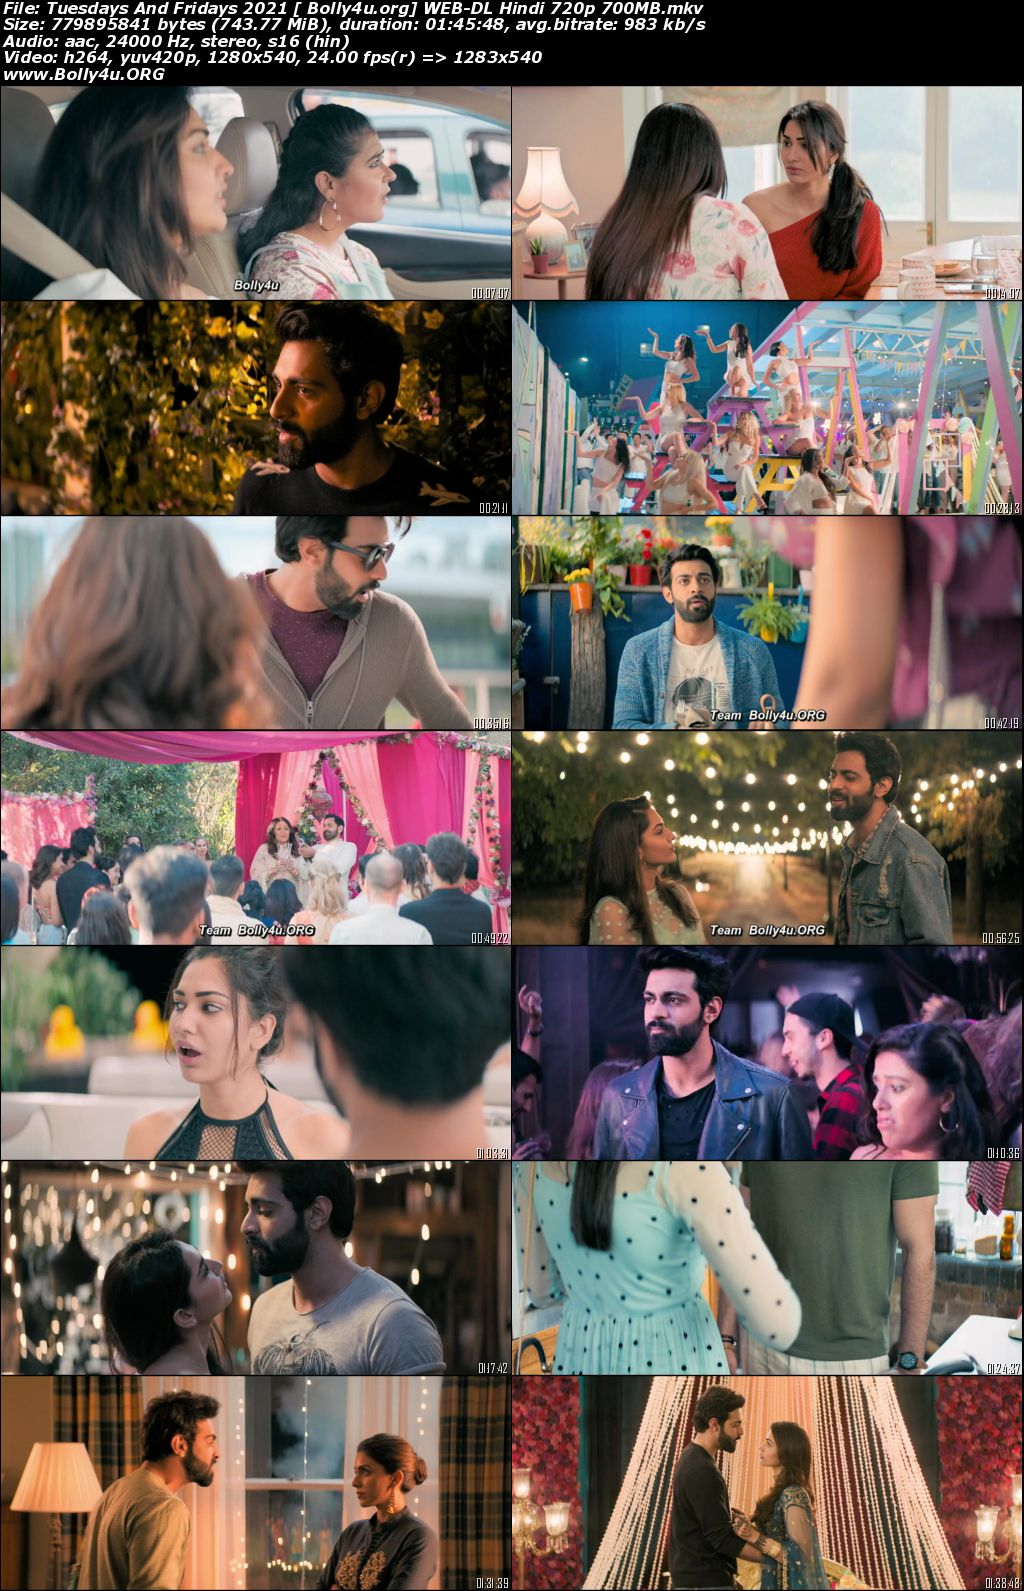 Tuesdays And Fridays 2021 WEB-DL 350Mb Hindi Movie Download 480p